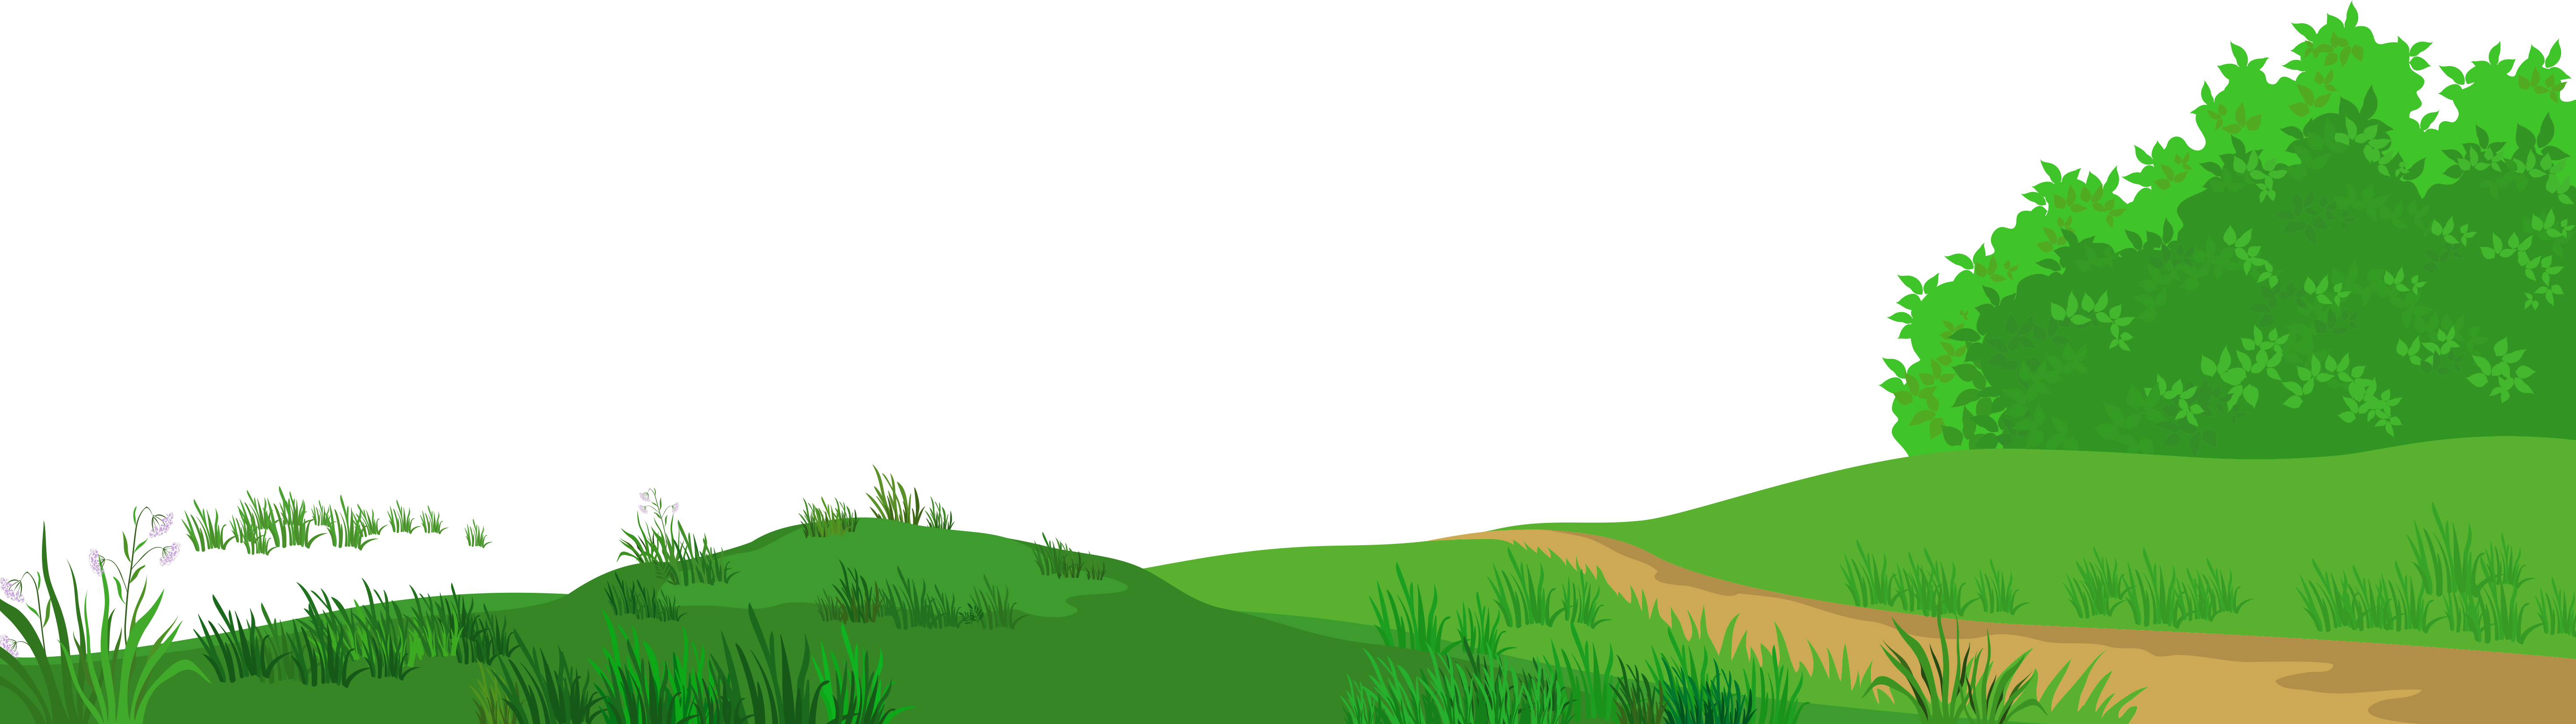 Clipart grass meadow. With path png picture